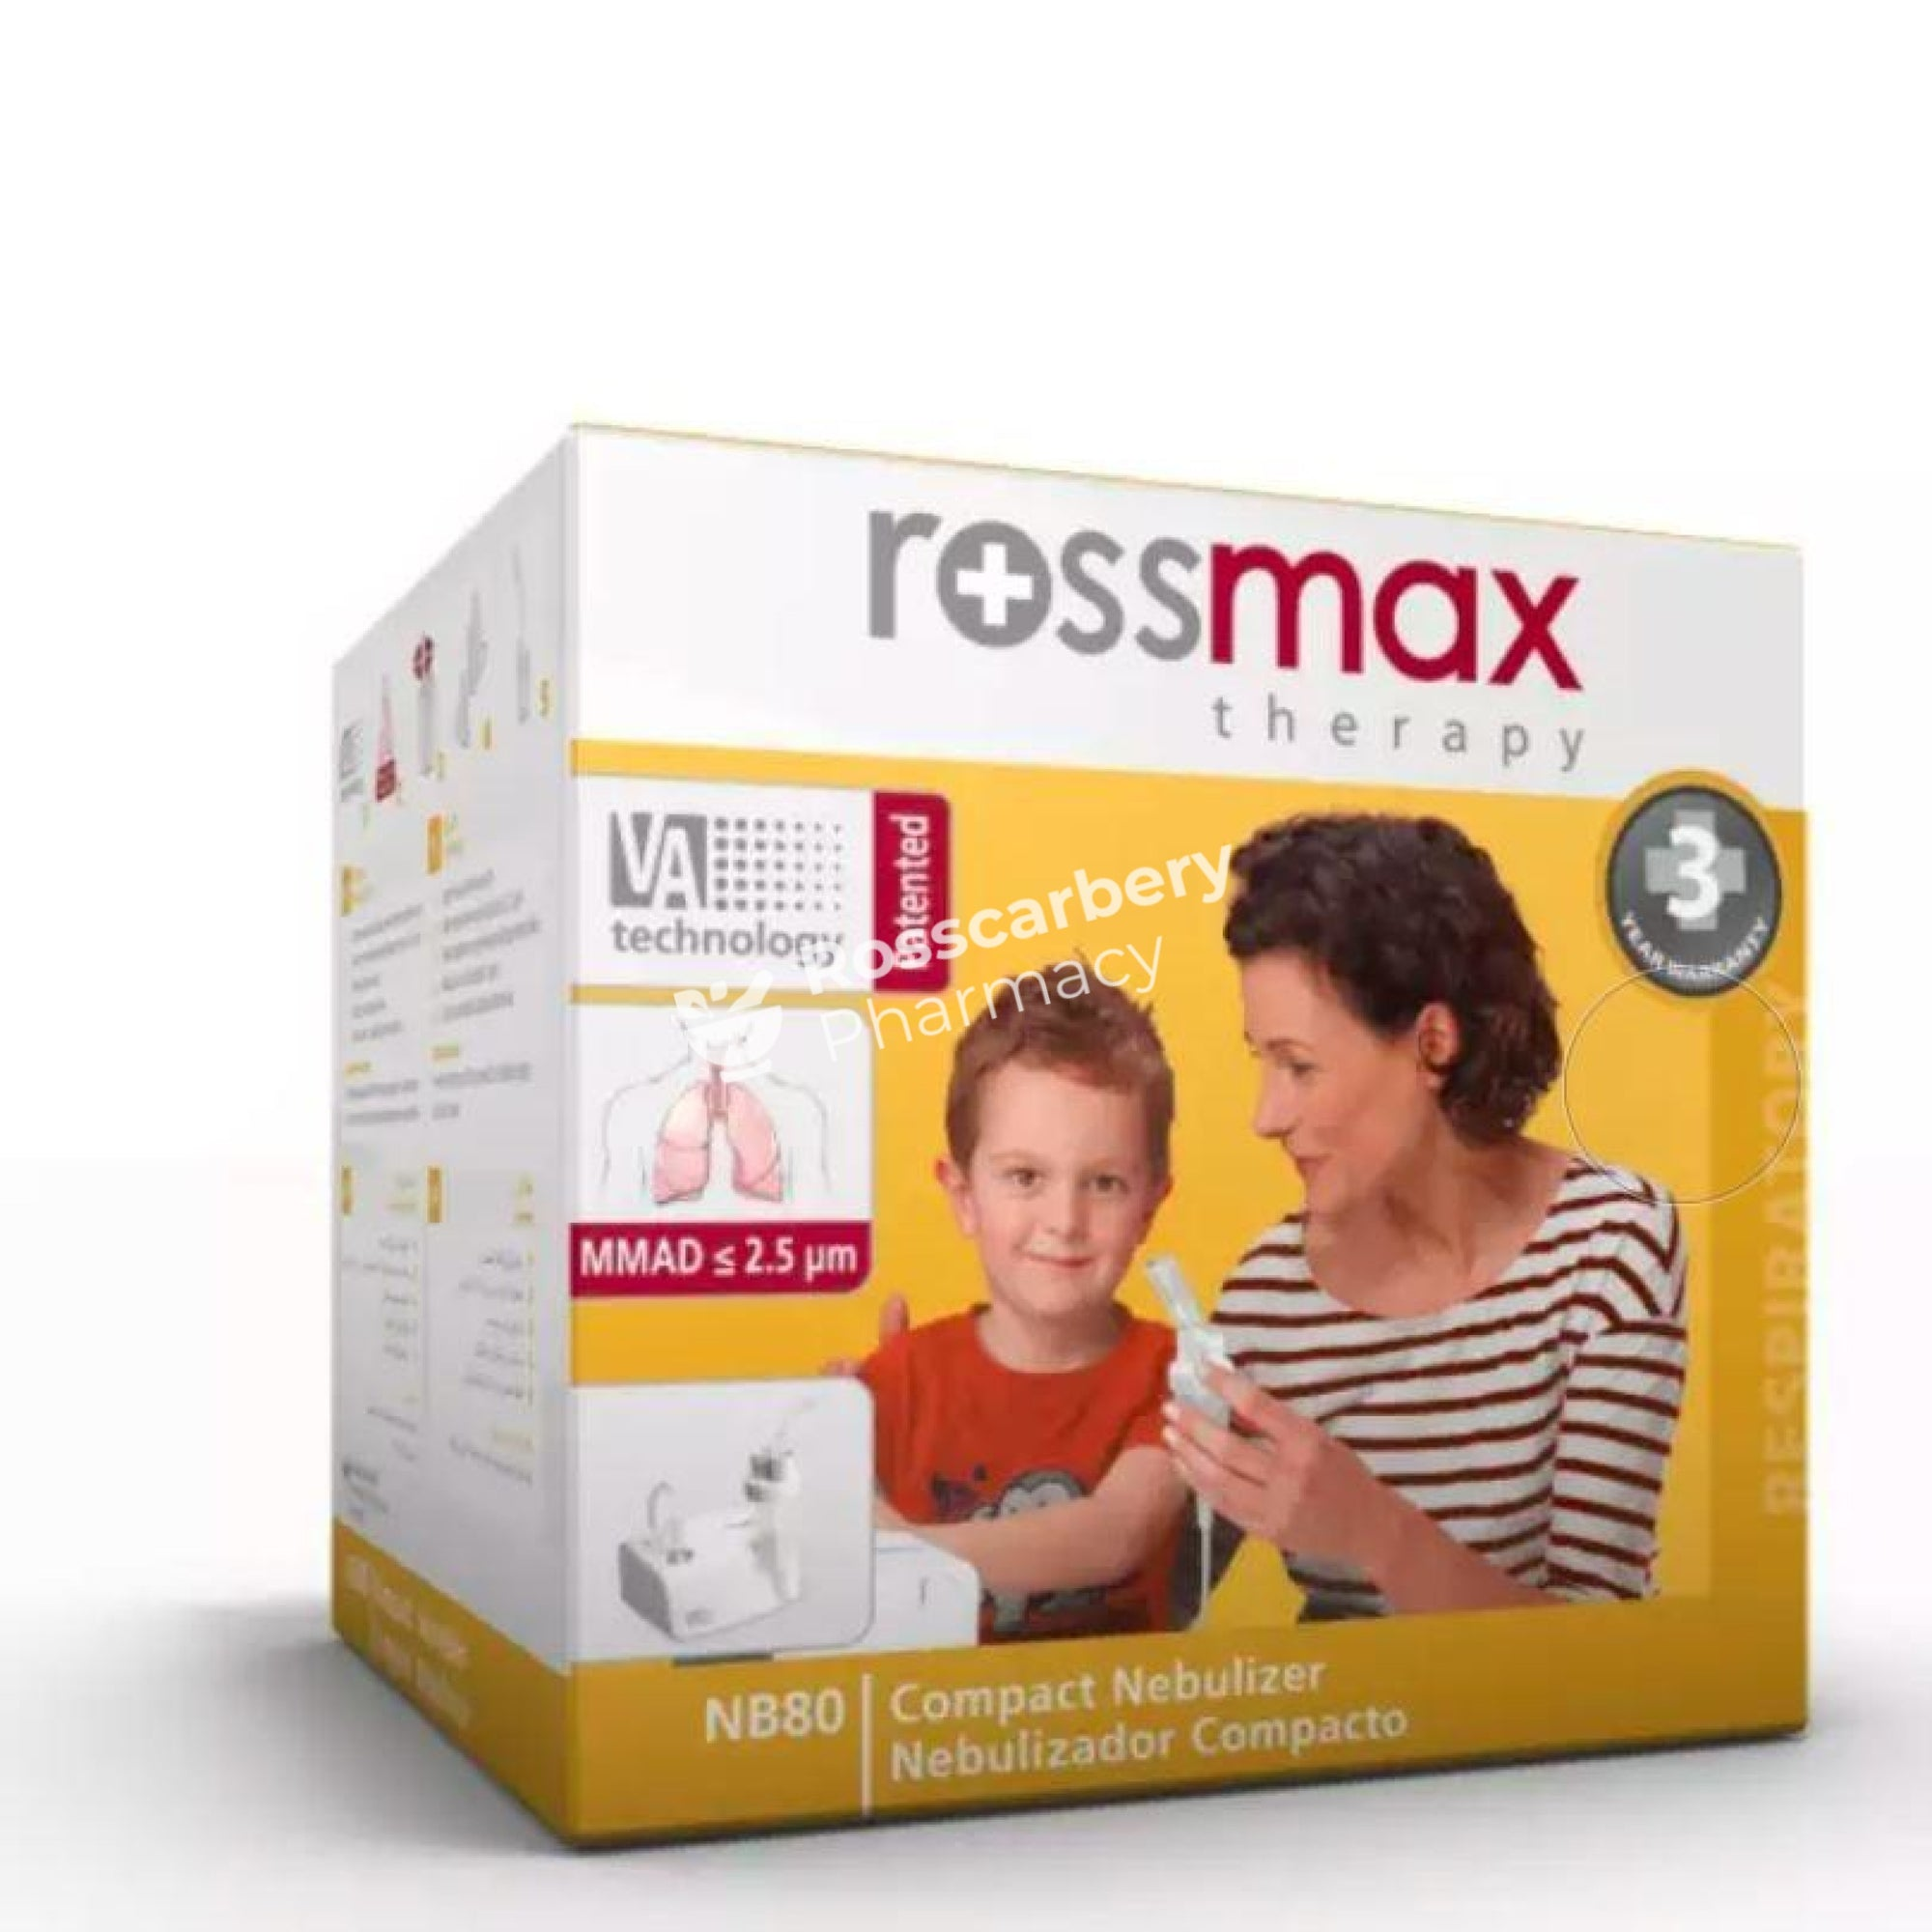 Rossmax Compact Nebulizer First Aid Accessories